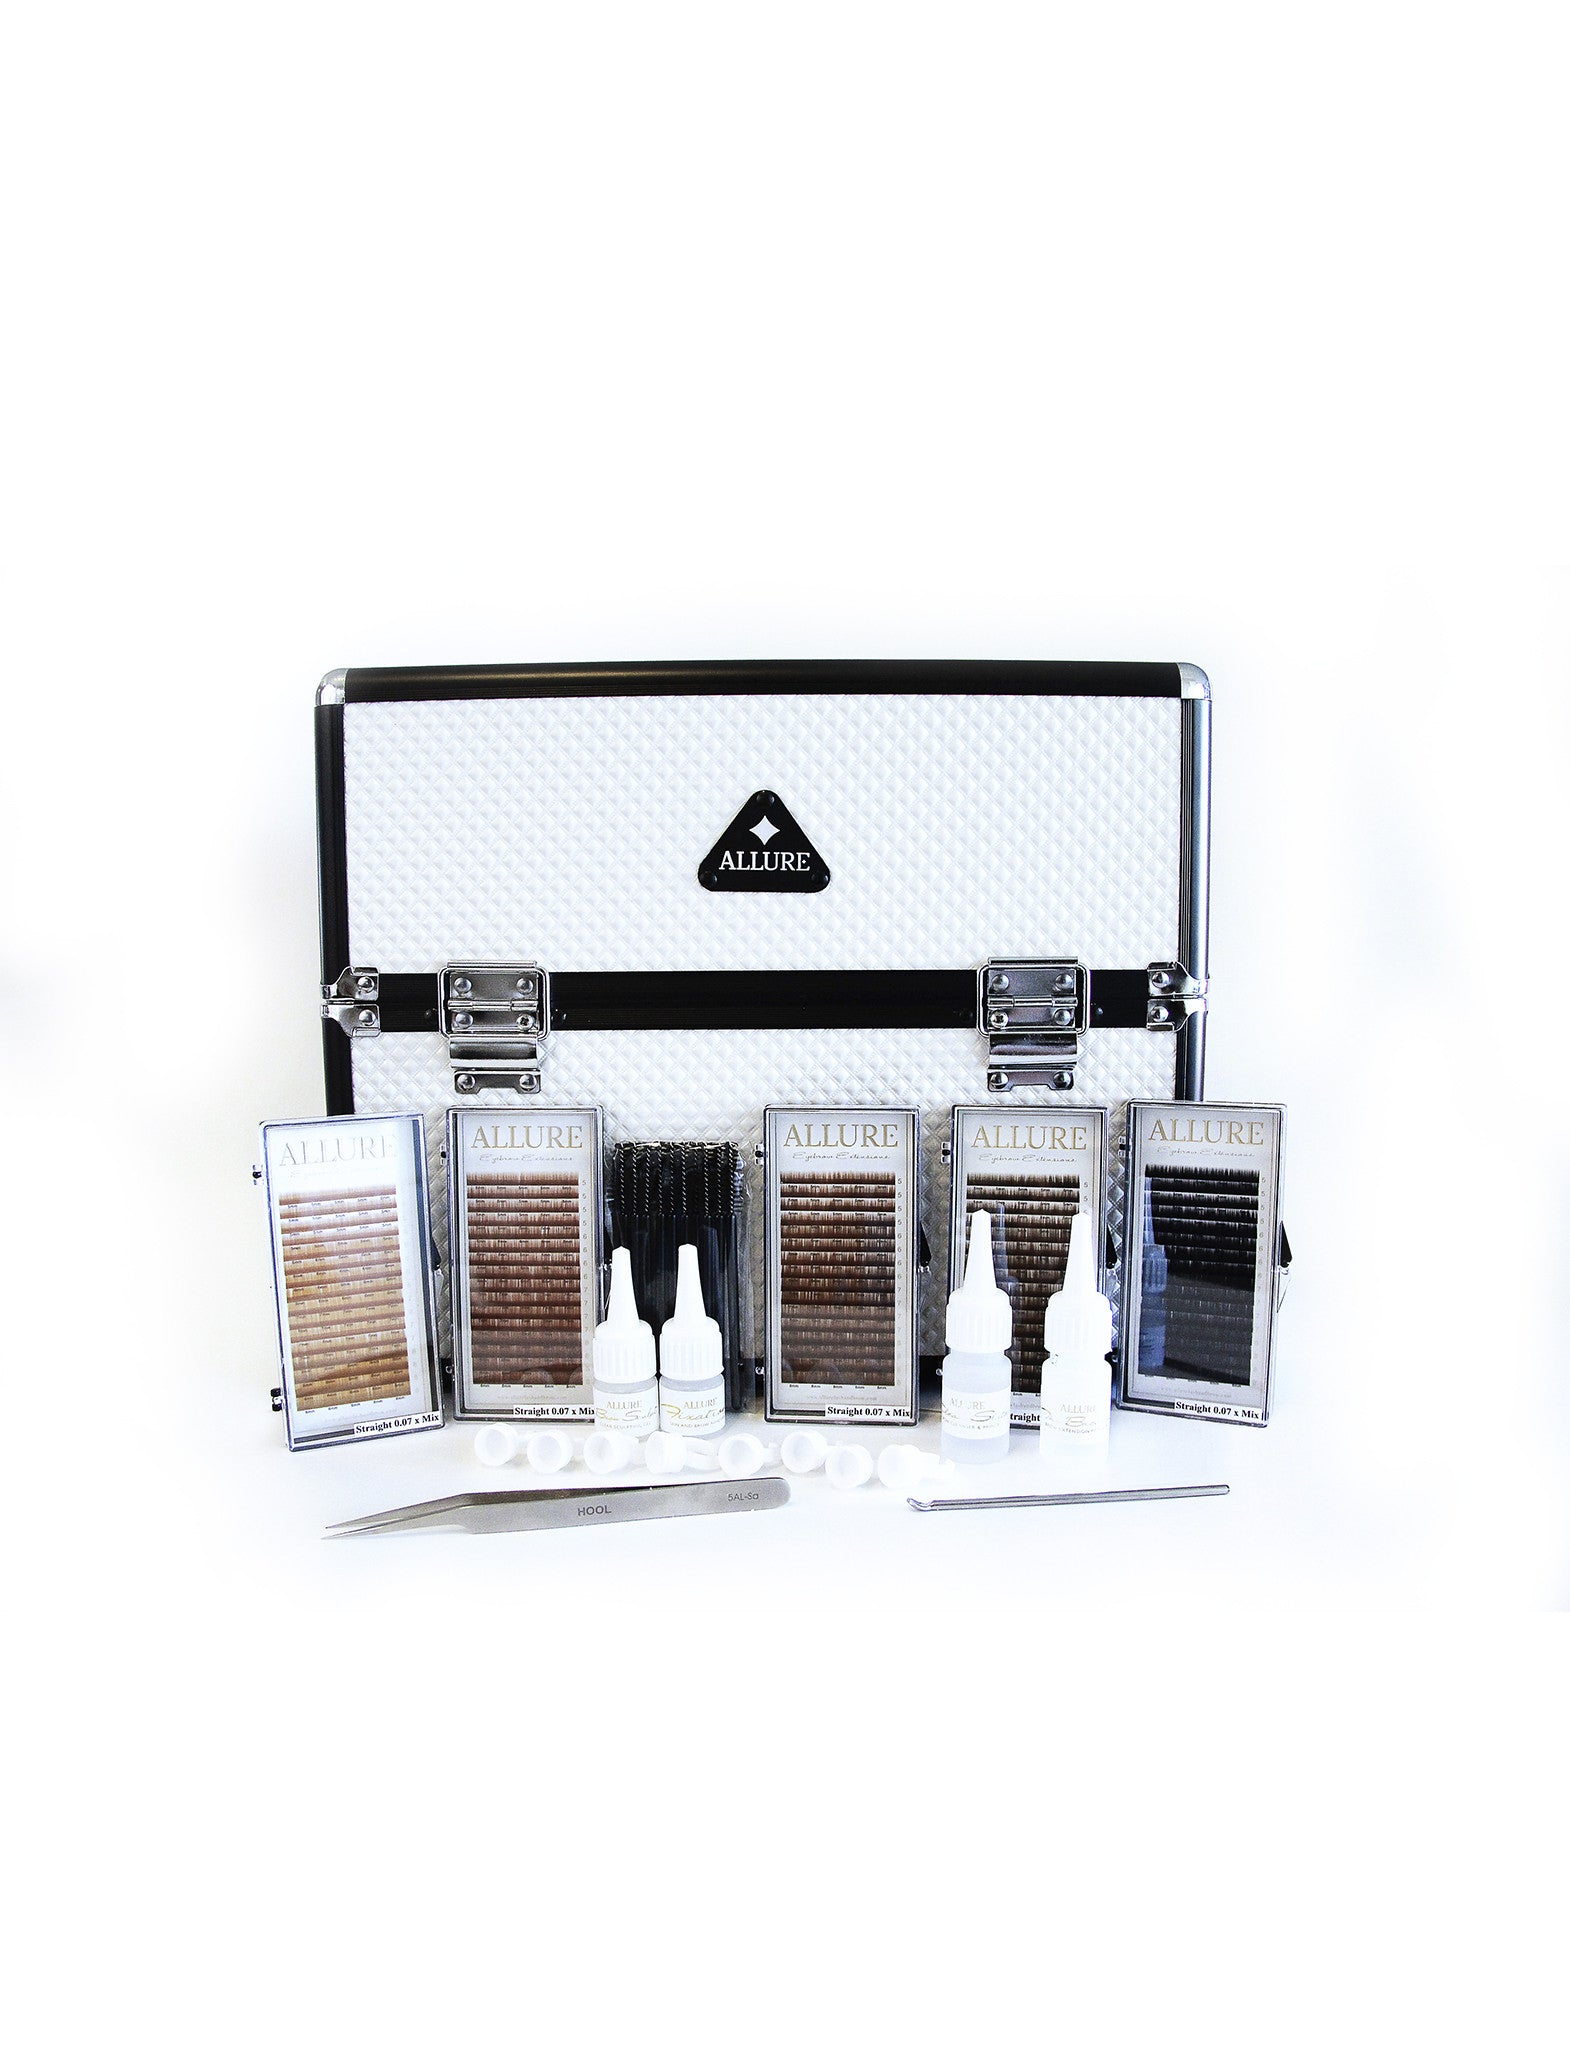 Eyelash And Eyebrow Kits Blink Lash Store